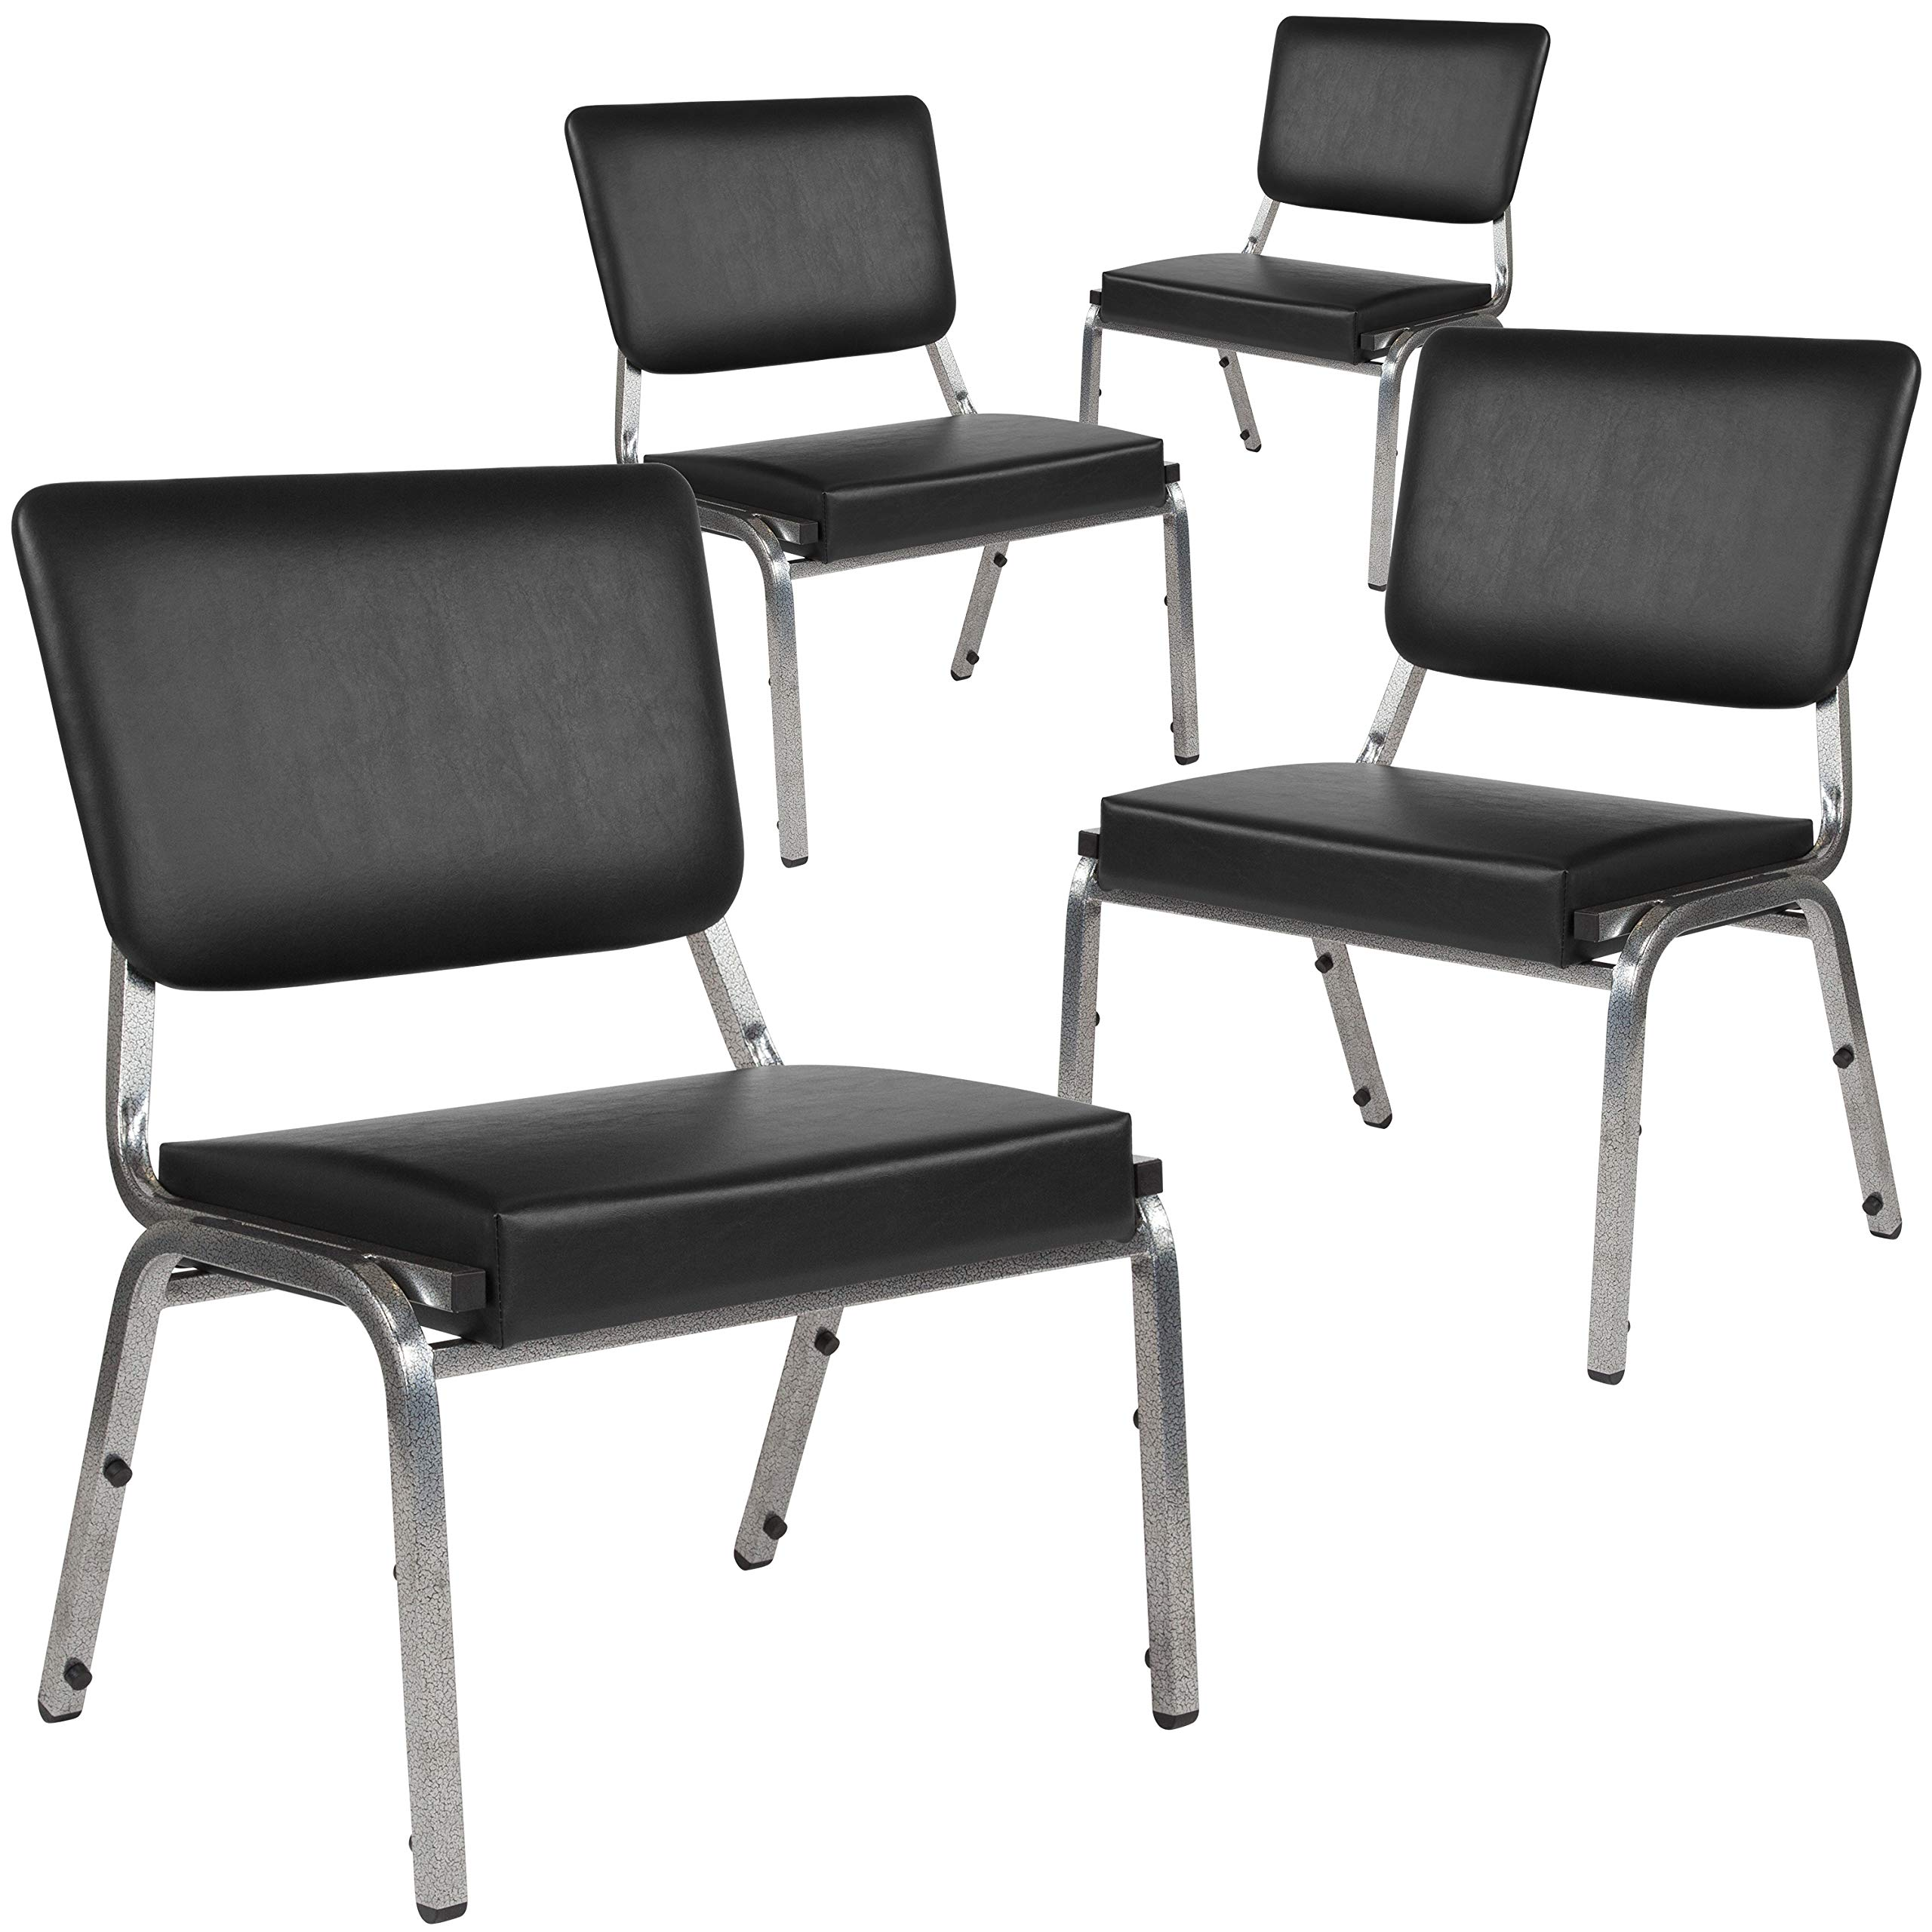 Flash Furniture 4-XU-DG-60442-660-2-BV-GG Bariatric Chairs, 4 Pack, Black Vinyl